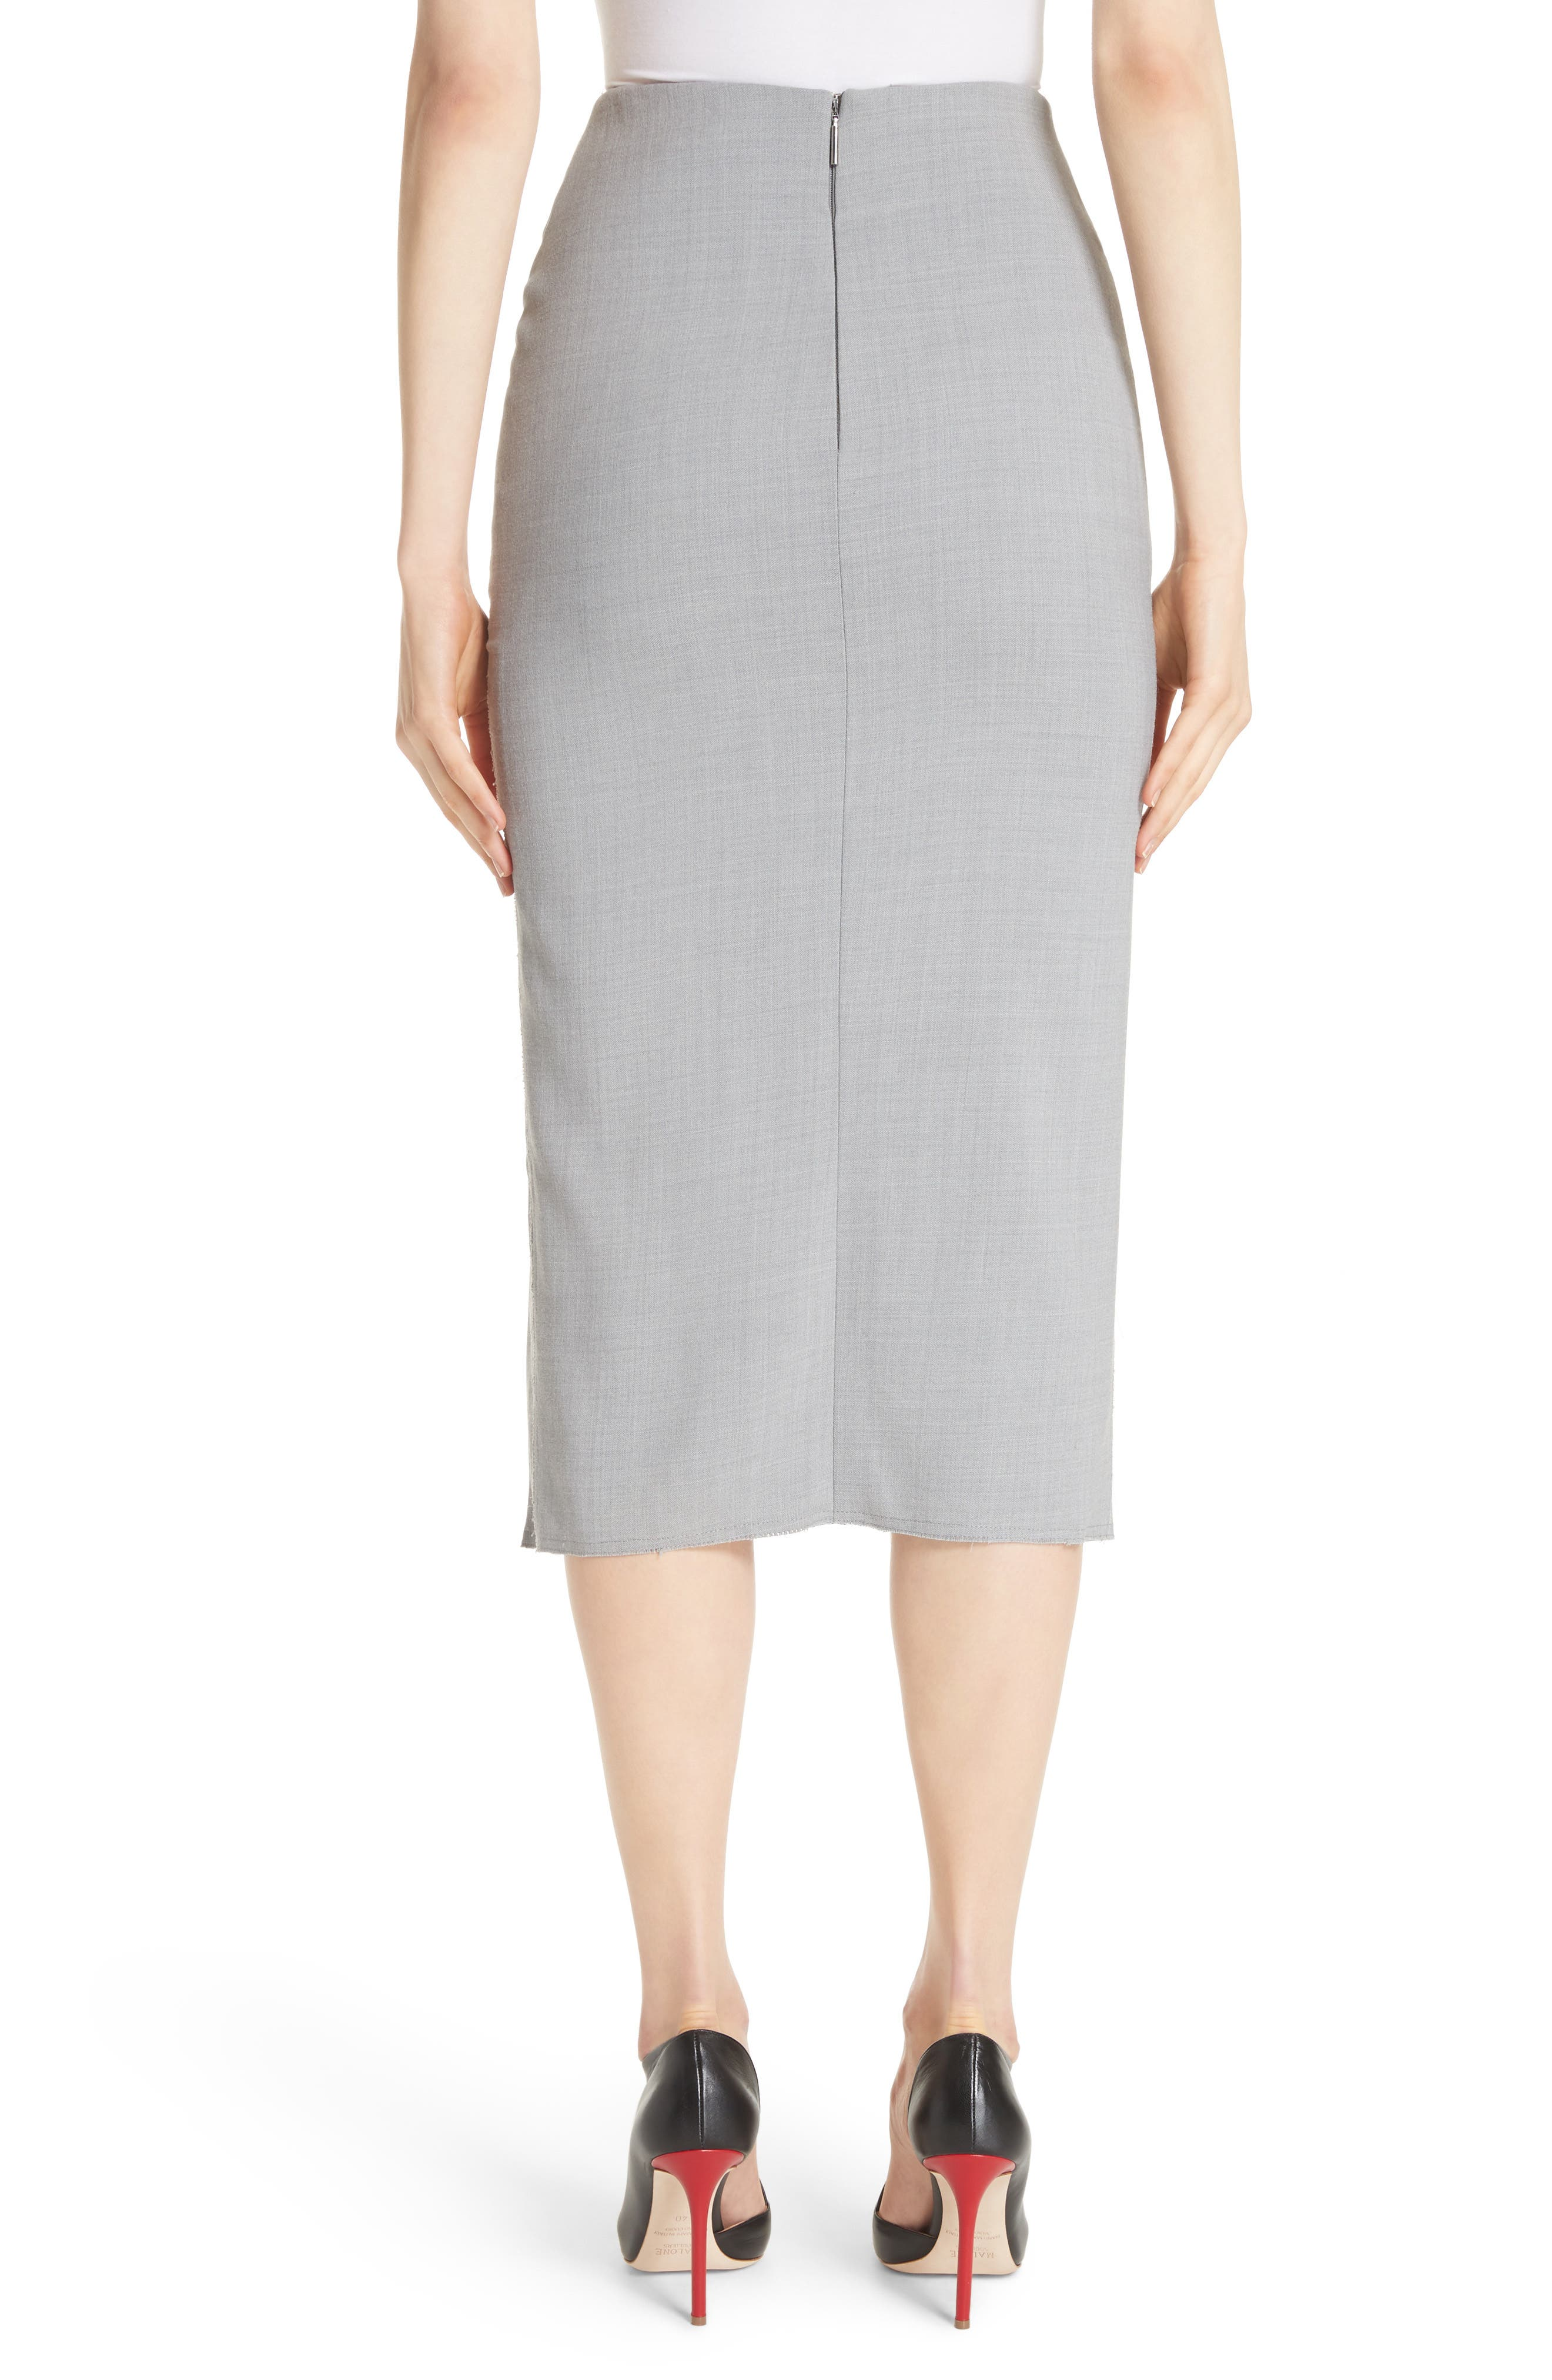 Jason Wu Raw Hem Tie Front Skirt,                             Alternate thumbnail 2, color,                             058